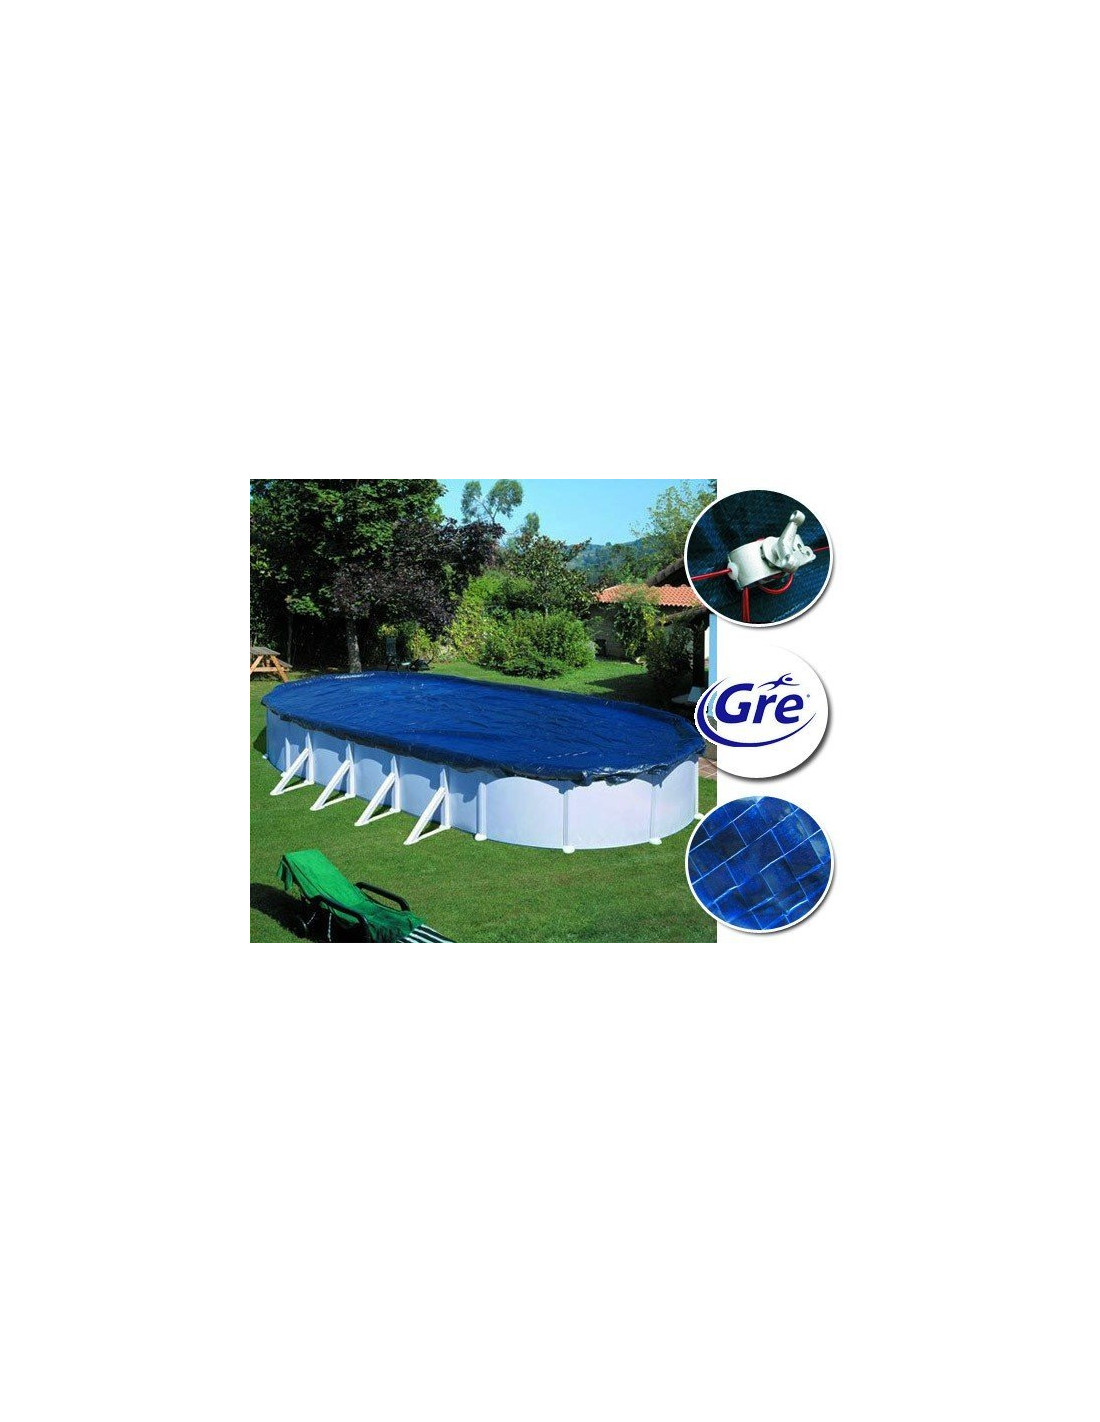 B che d 39 hivernage piscine hors sol ovale de gre pool for Home piscine